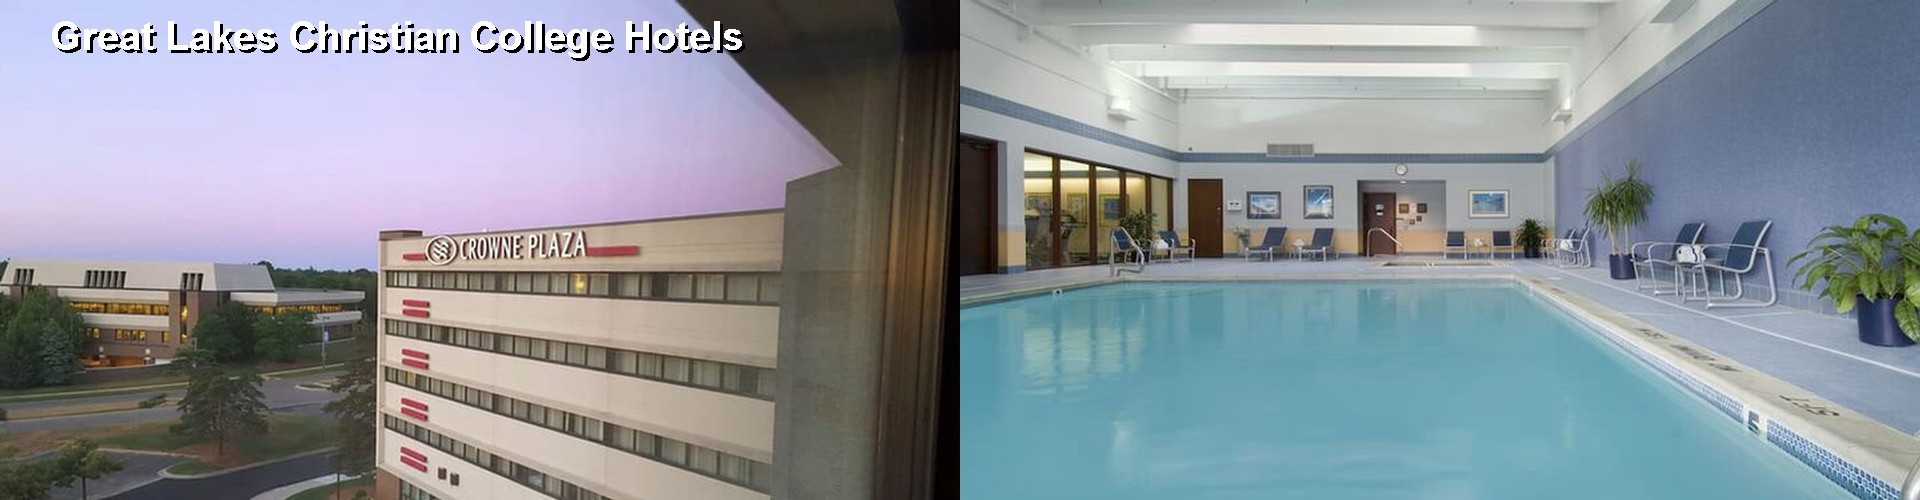 5 Best Hotels near Great Lakes Christian College